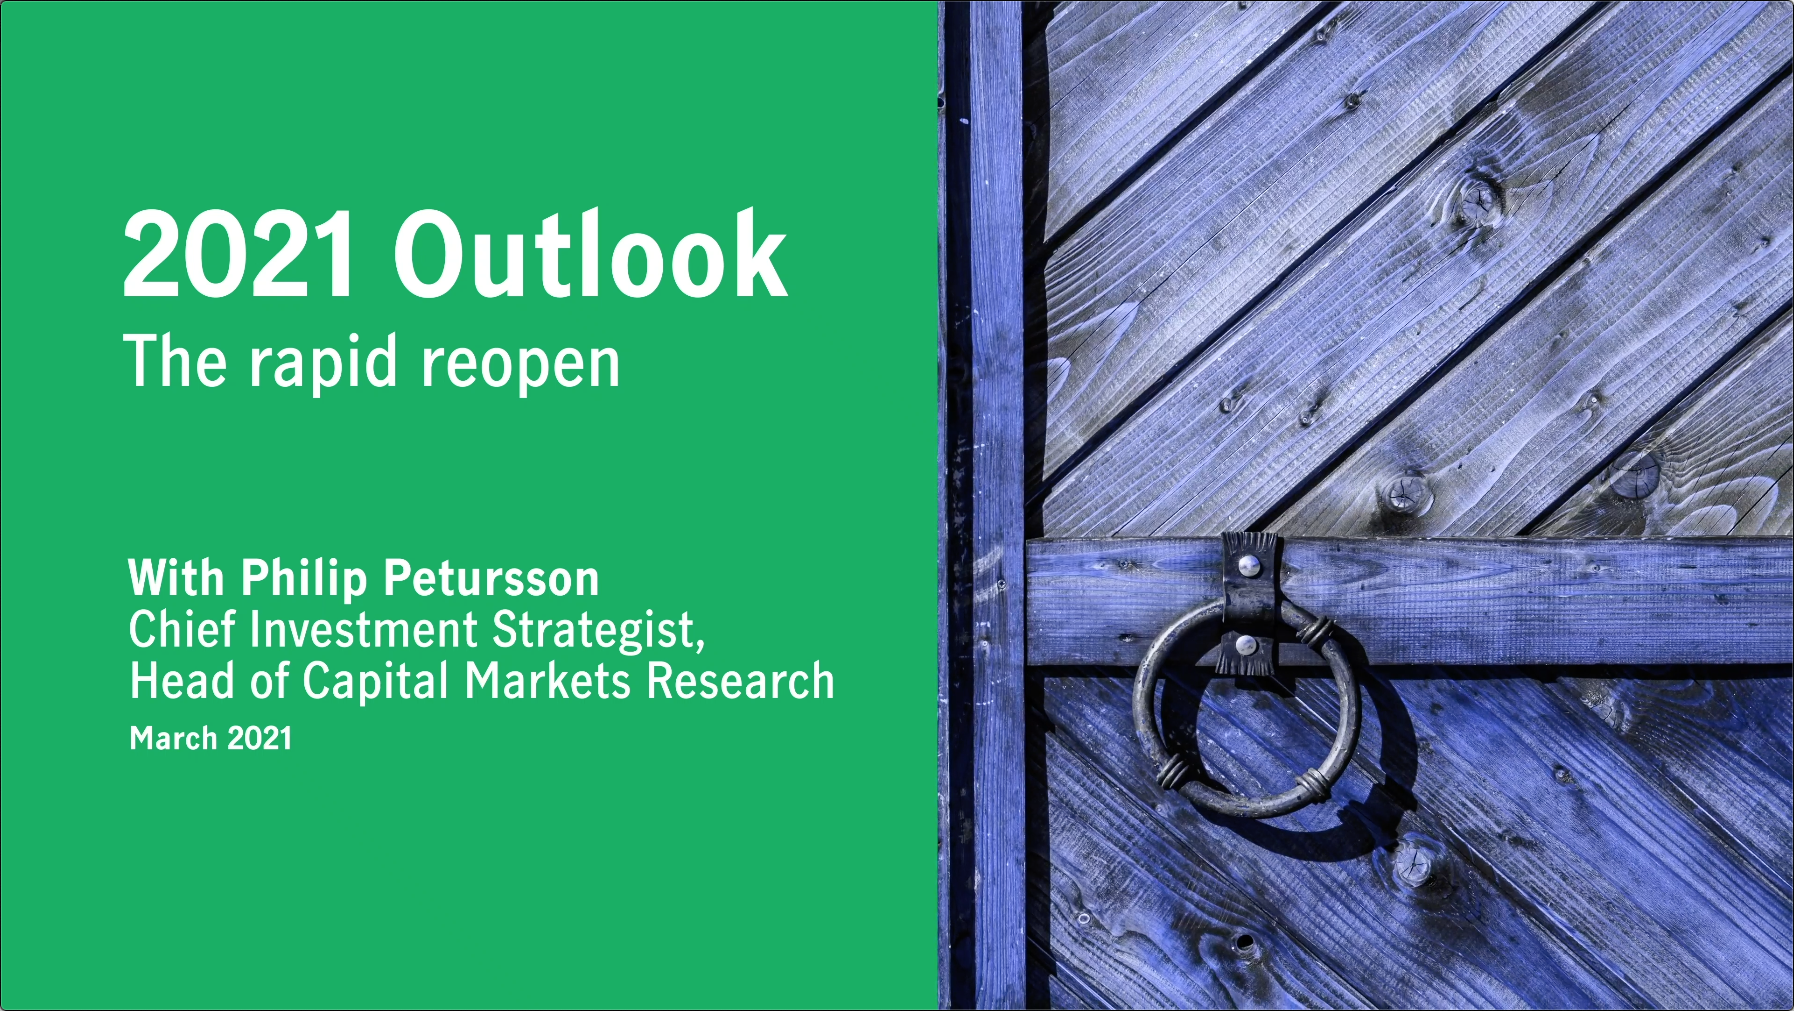 Q2 2021 outlook: The rapid reopen Thumbnail